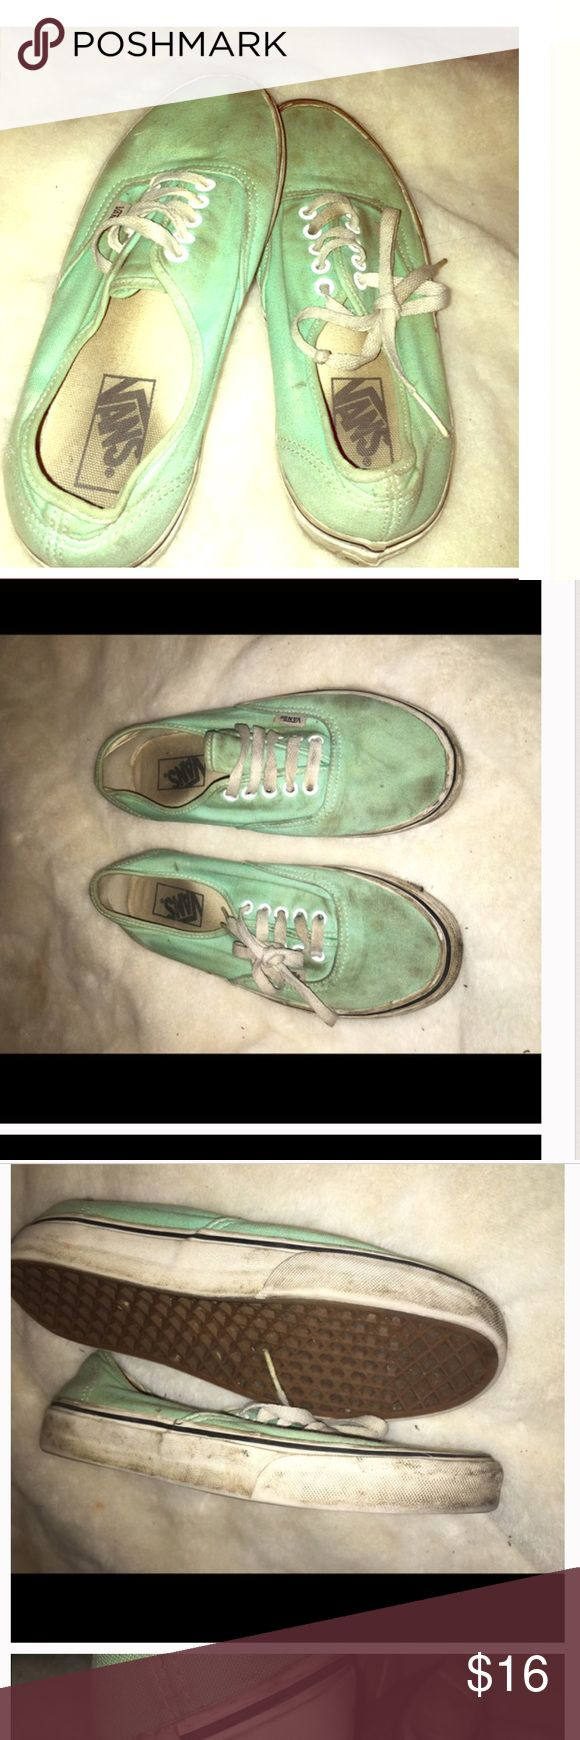 Mint Green Vans •Reposting because I had some strange comments on my previous listing. They are classic van sneakers from journeys. Women's 8, men's 6 •Condition: pre loved. Still have a ton of life left in them, but just need to be washed. SALE is FINAL  •Please feel free to make offers! ✅  •NO ❌🅿️🅿️or Ⓜ️erc❌ •Measurements & more pictures available upon request!  •FREE GIFT INCLUDED (when gifts are available)🎁 Vans Shoes Sneakers